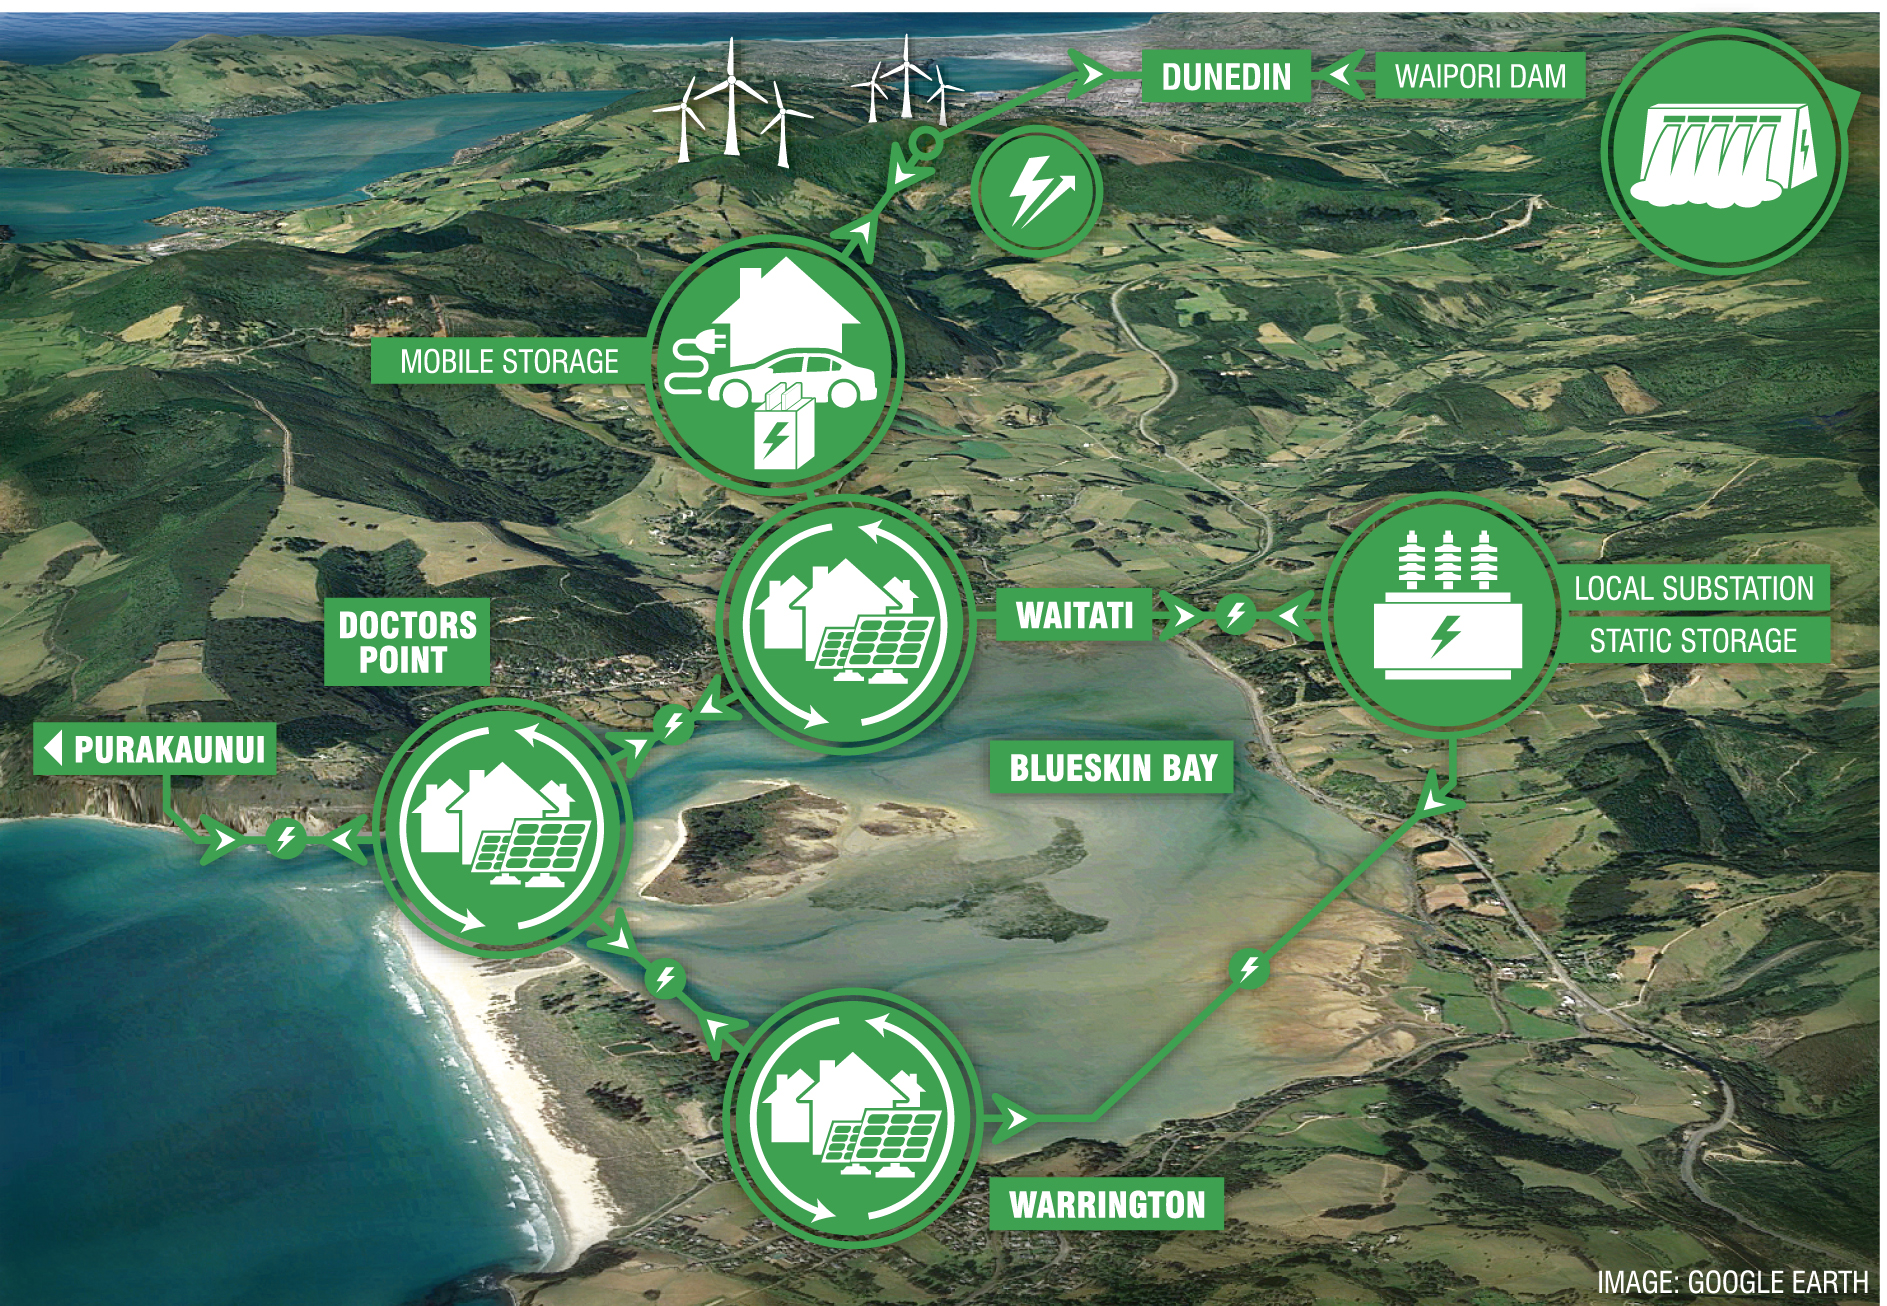 The Blueskin Energy Network smart grid provides one pathway for optimising energy efficiency,...